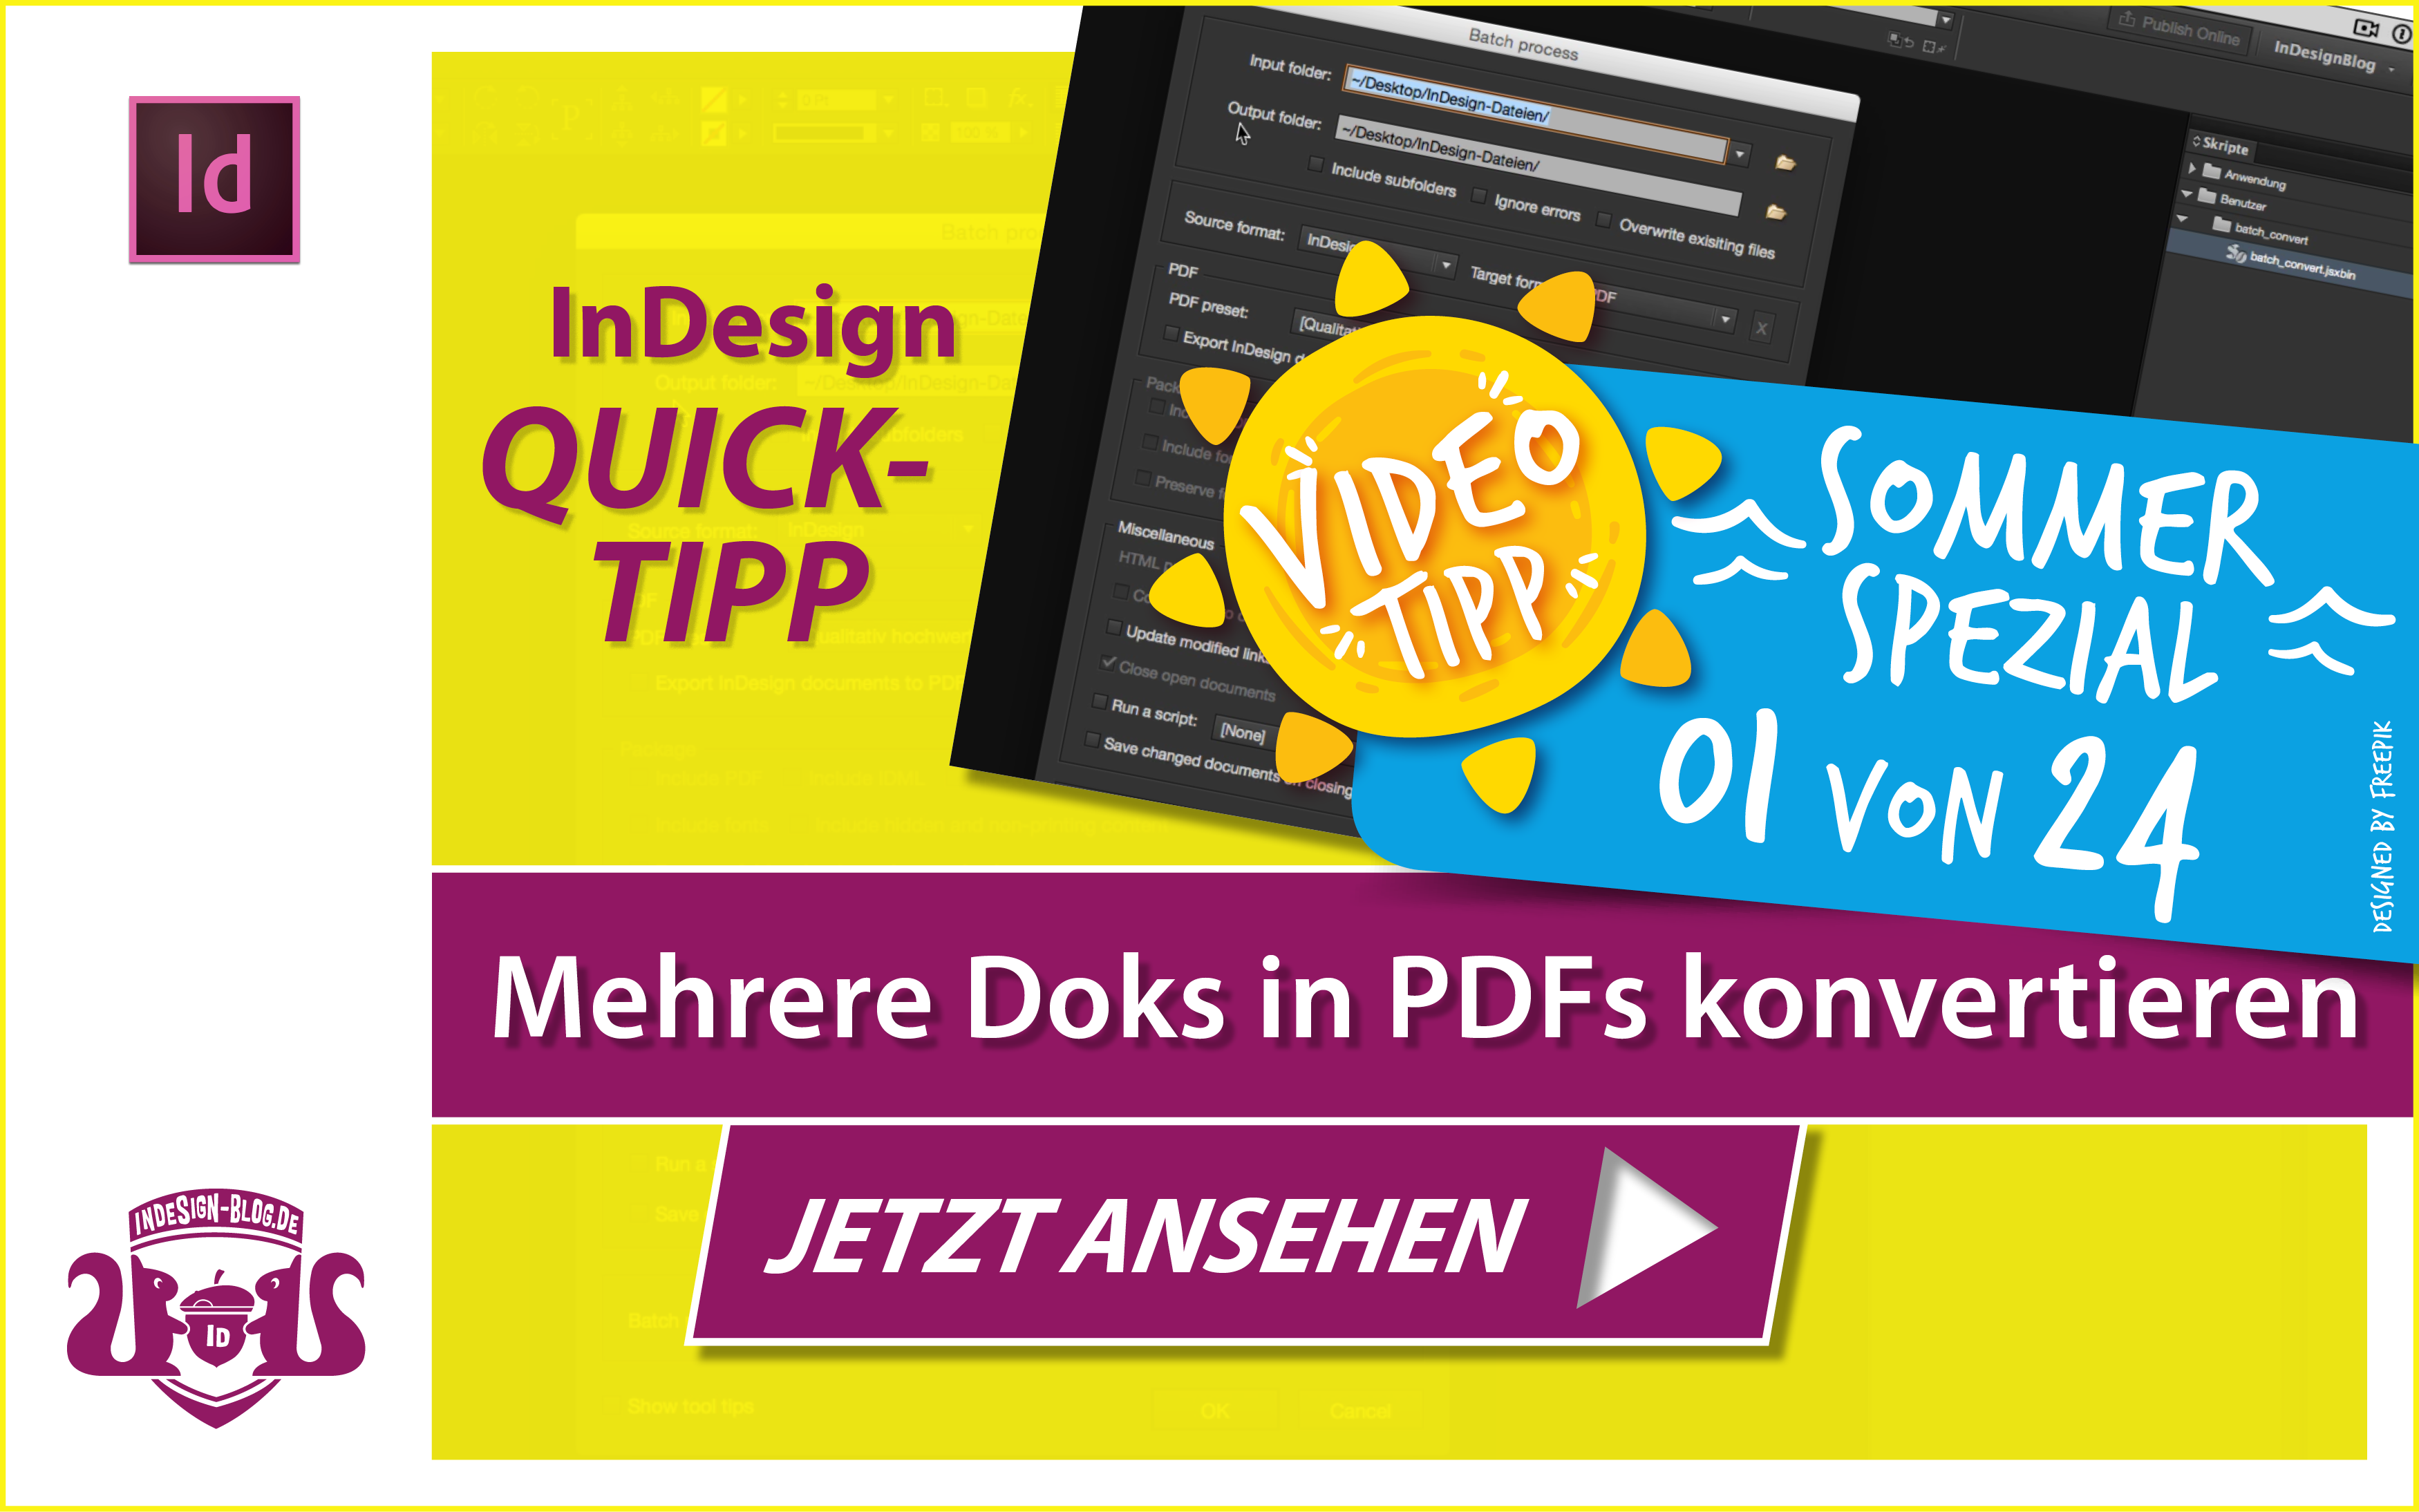 Screenshot – Video Mehrere InDesign Doks in PDFs konvertieren